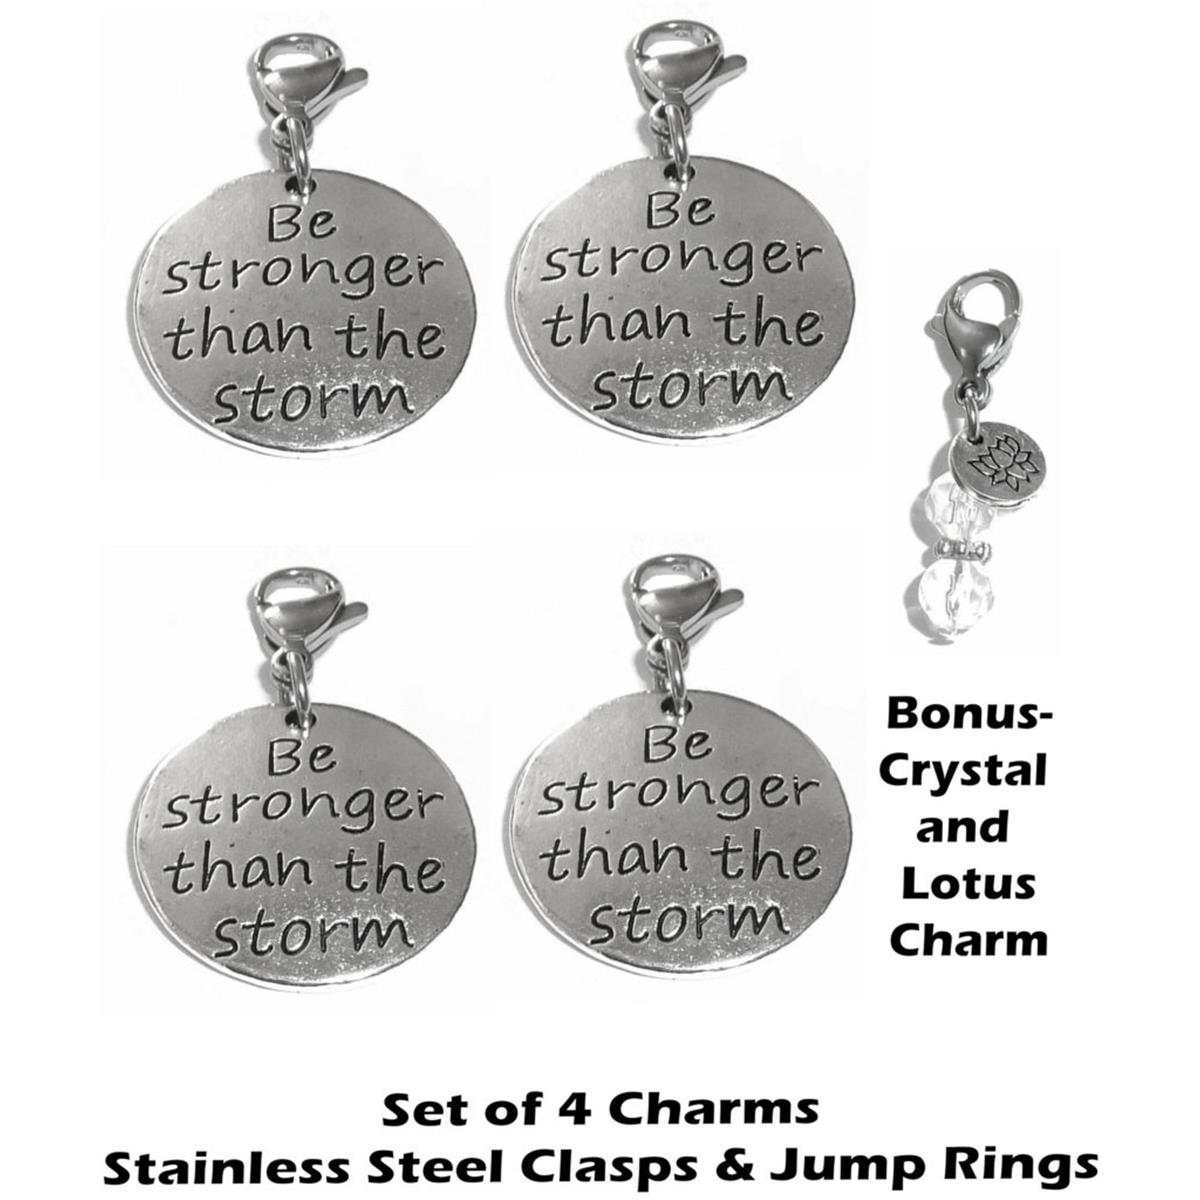 4 pack be stronger than the storm clip on charms - inspirational charms